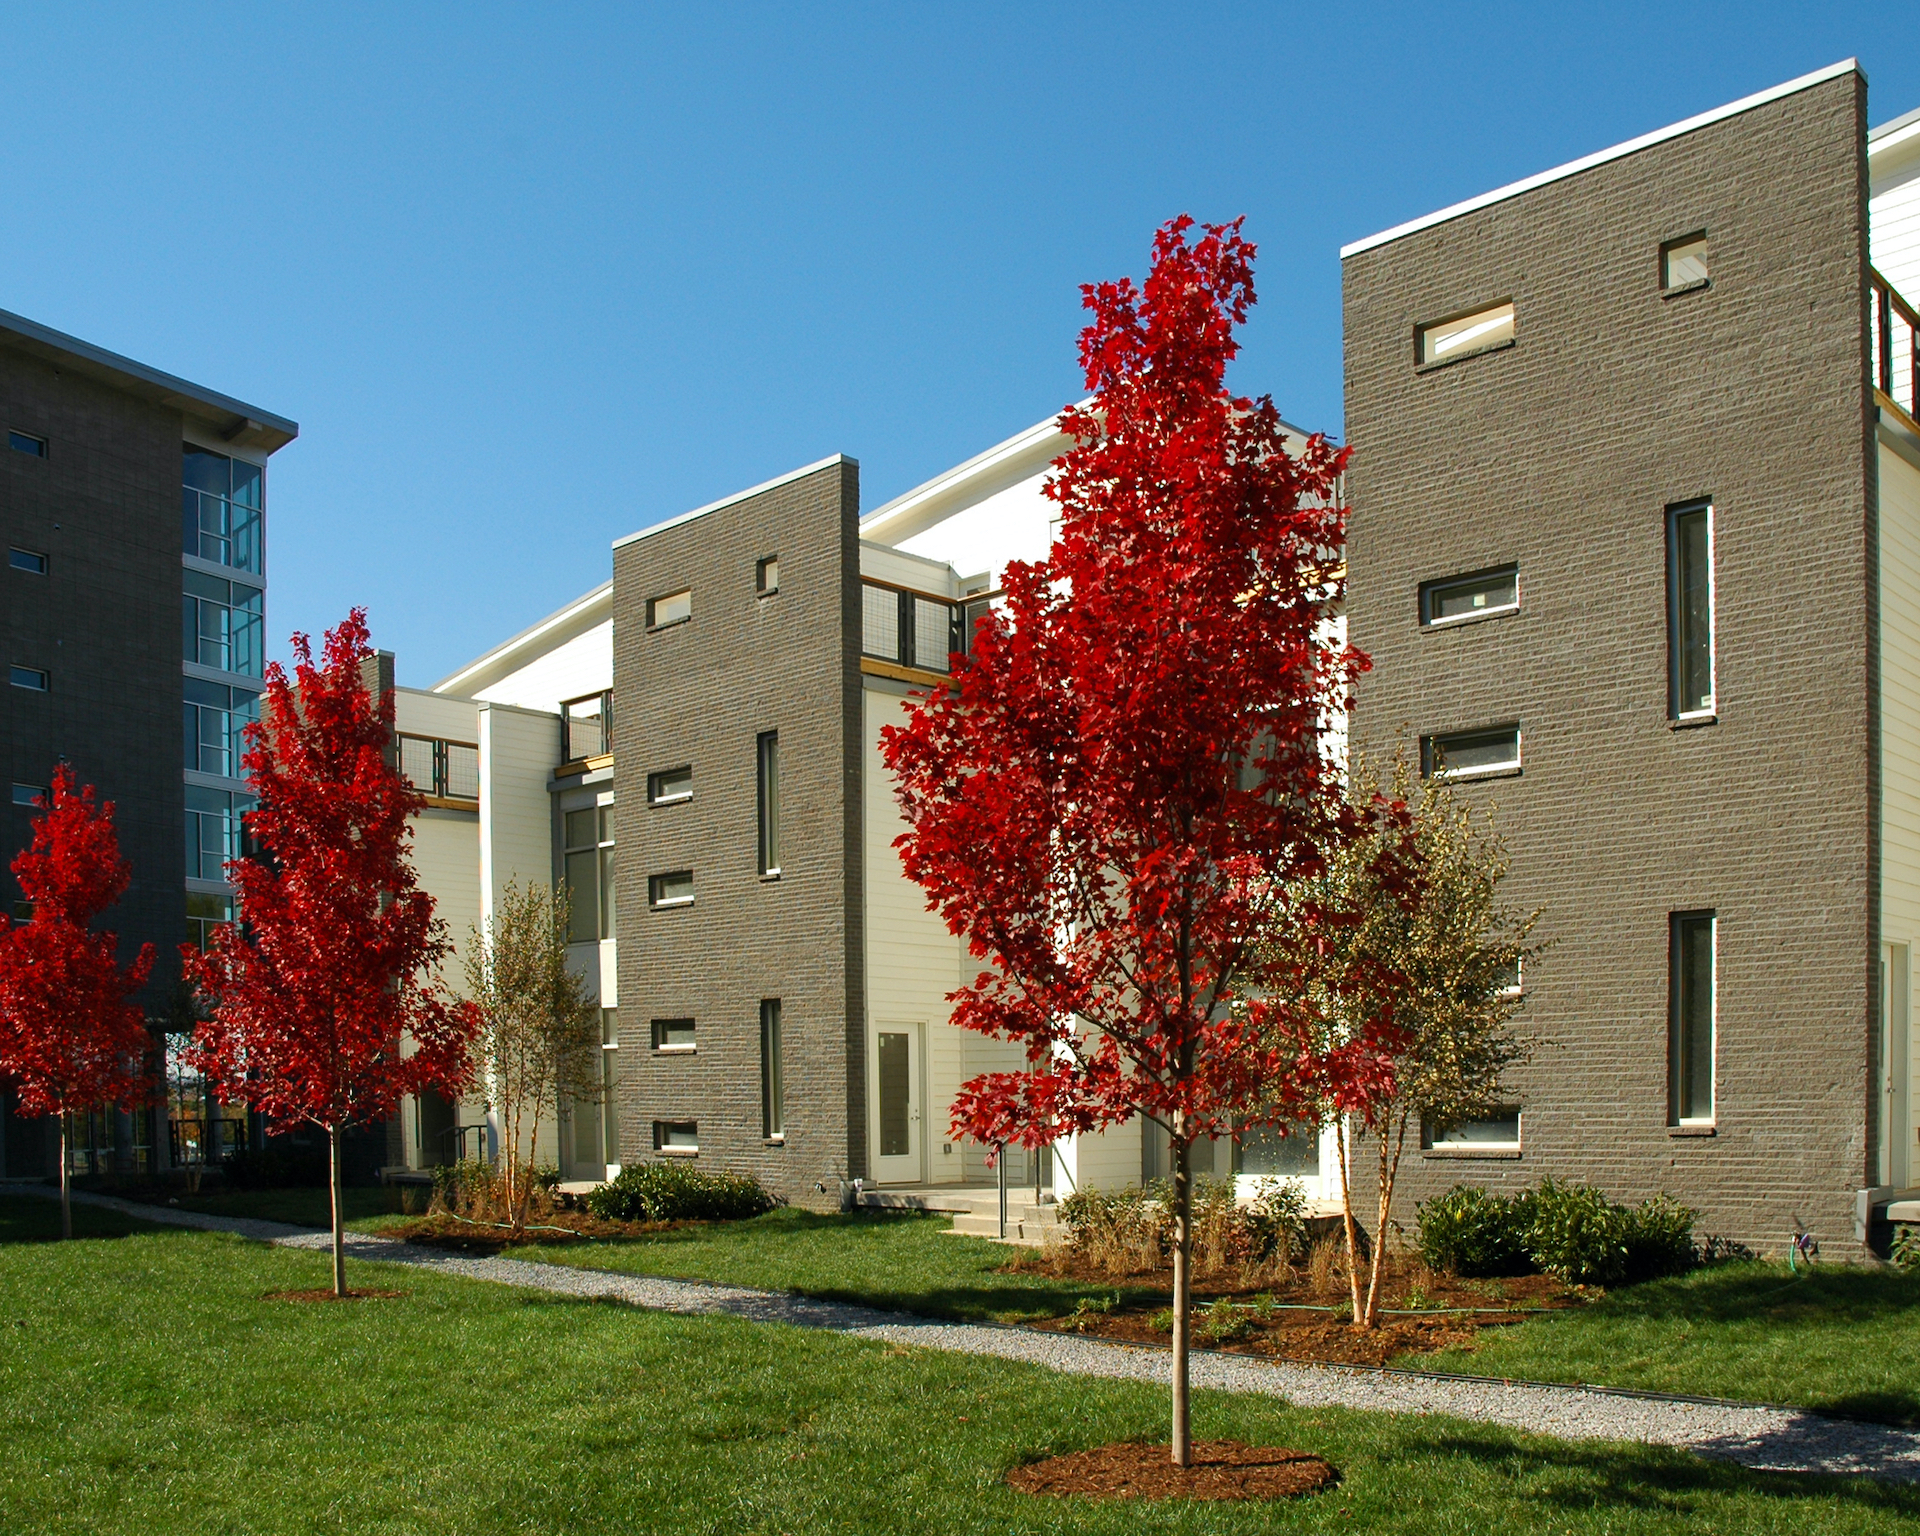 Fifth & Main Townhouses